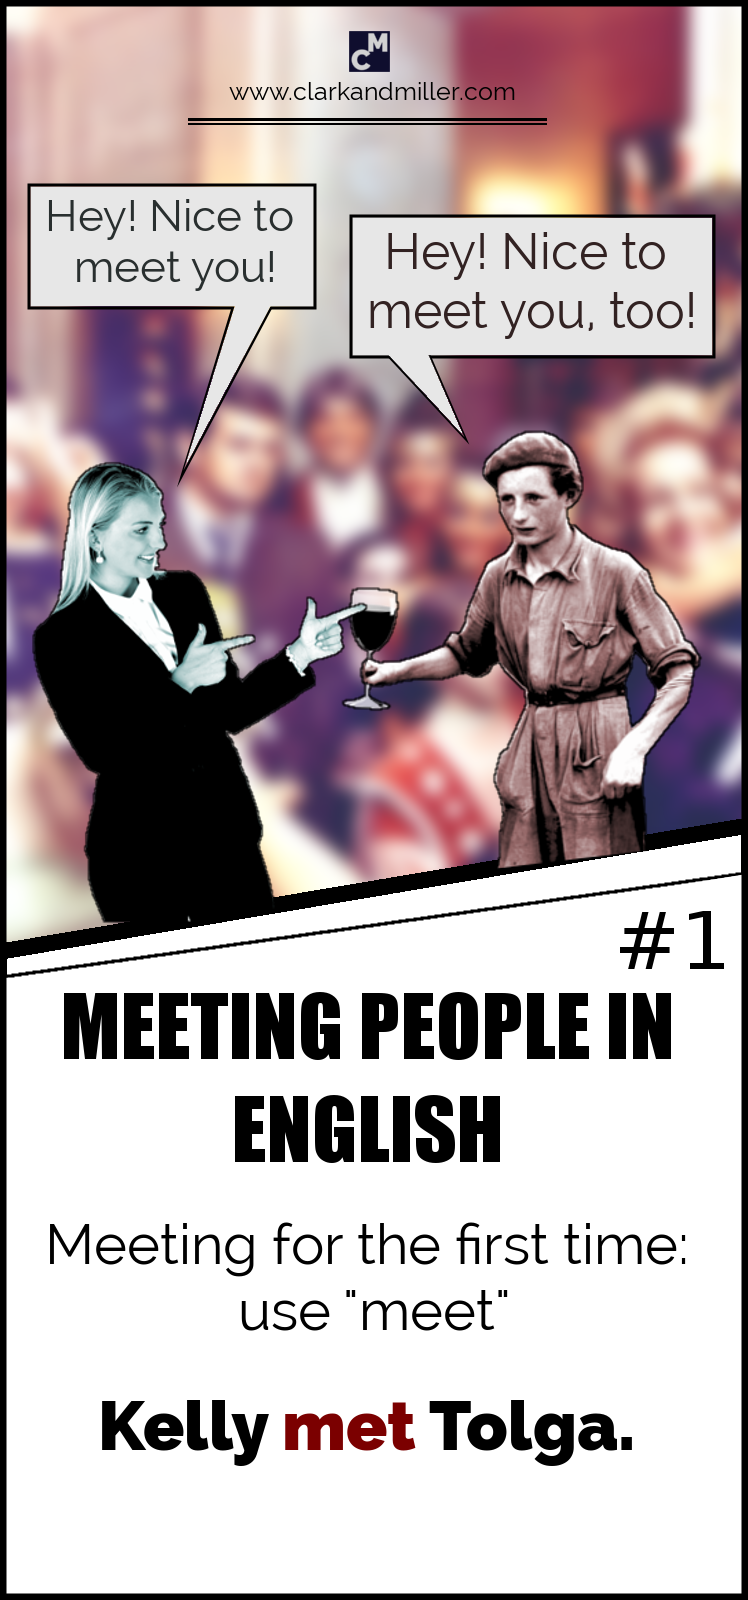 "Meeting people in English - Meeting for the first time: use ""meet"""